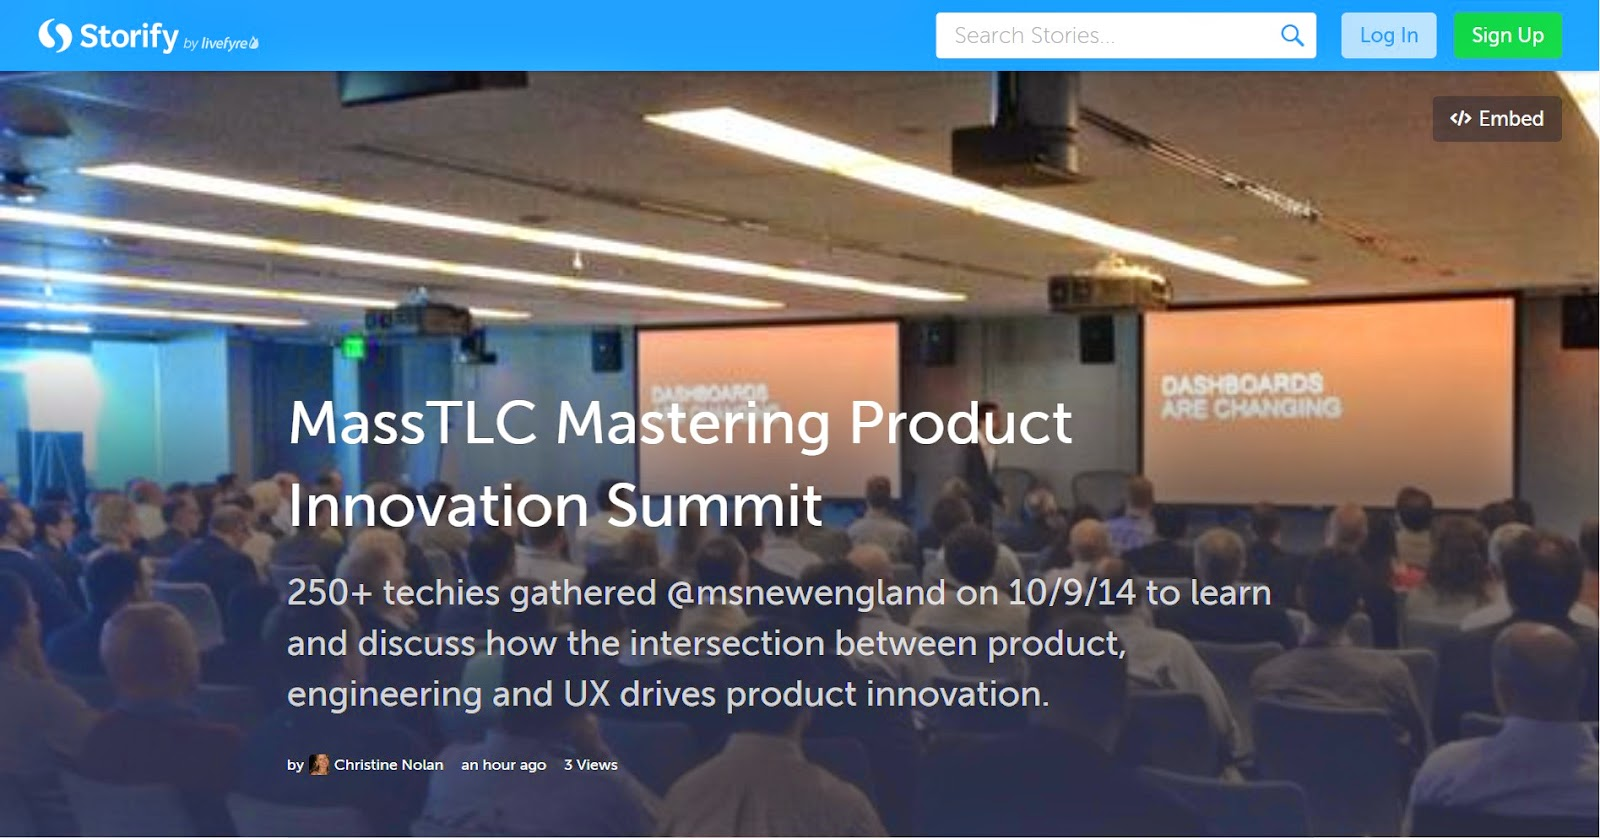 Mastering Product Innovation